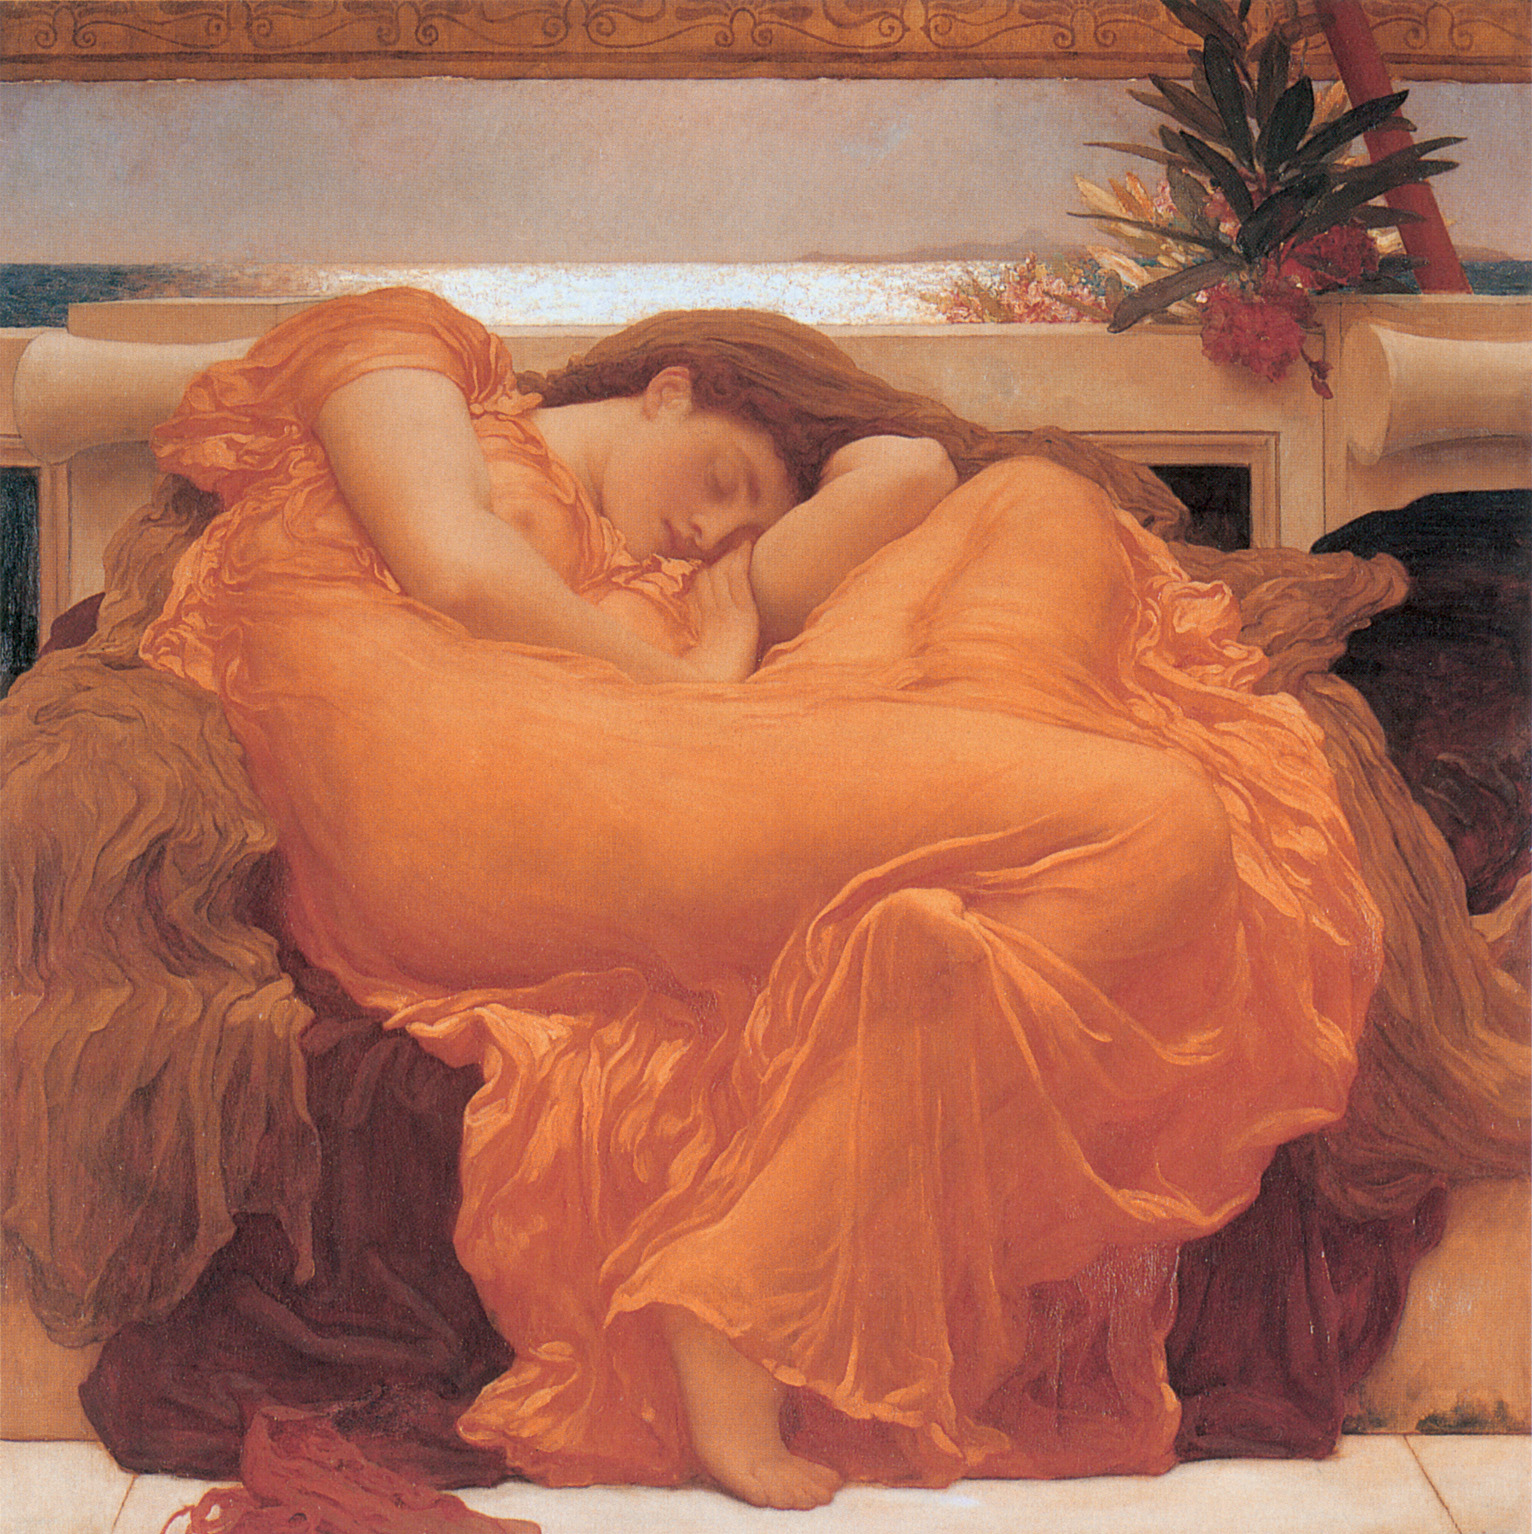 Flaming June, by Lord Frederic Leighton